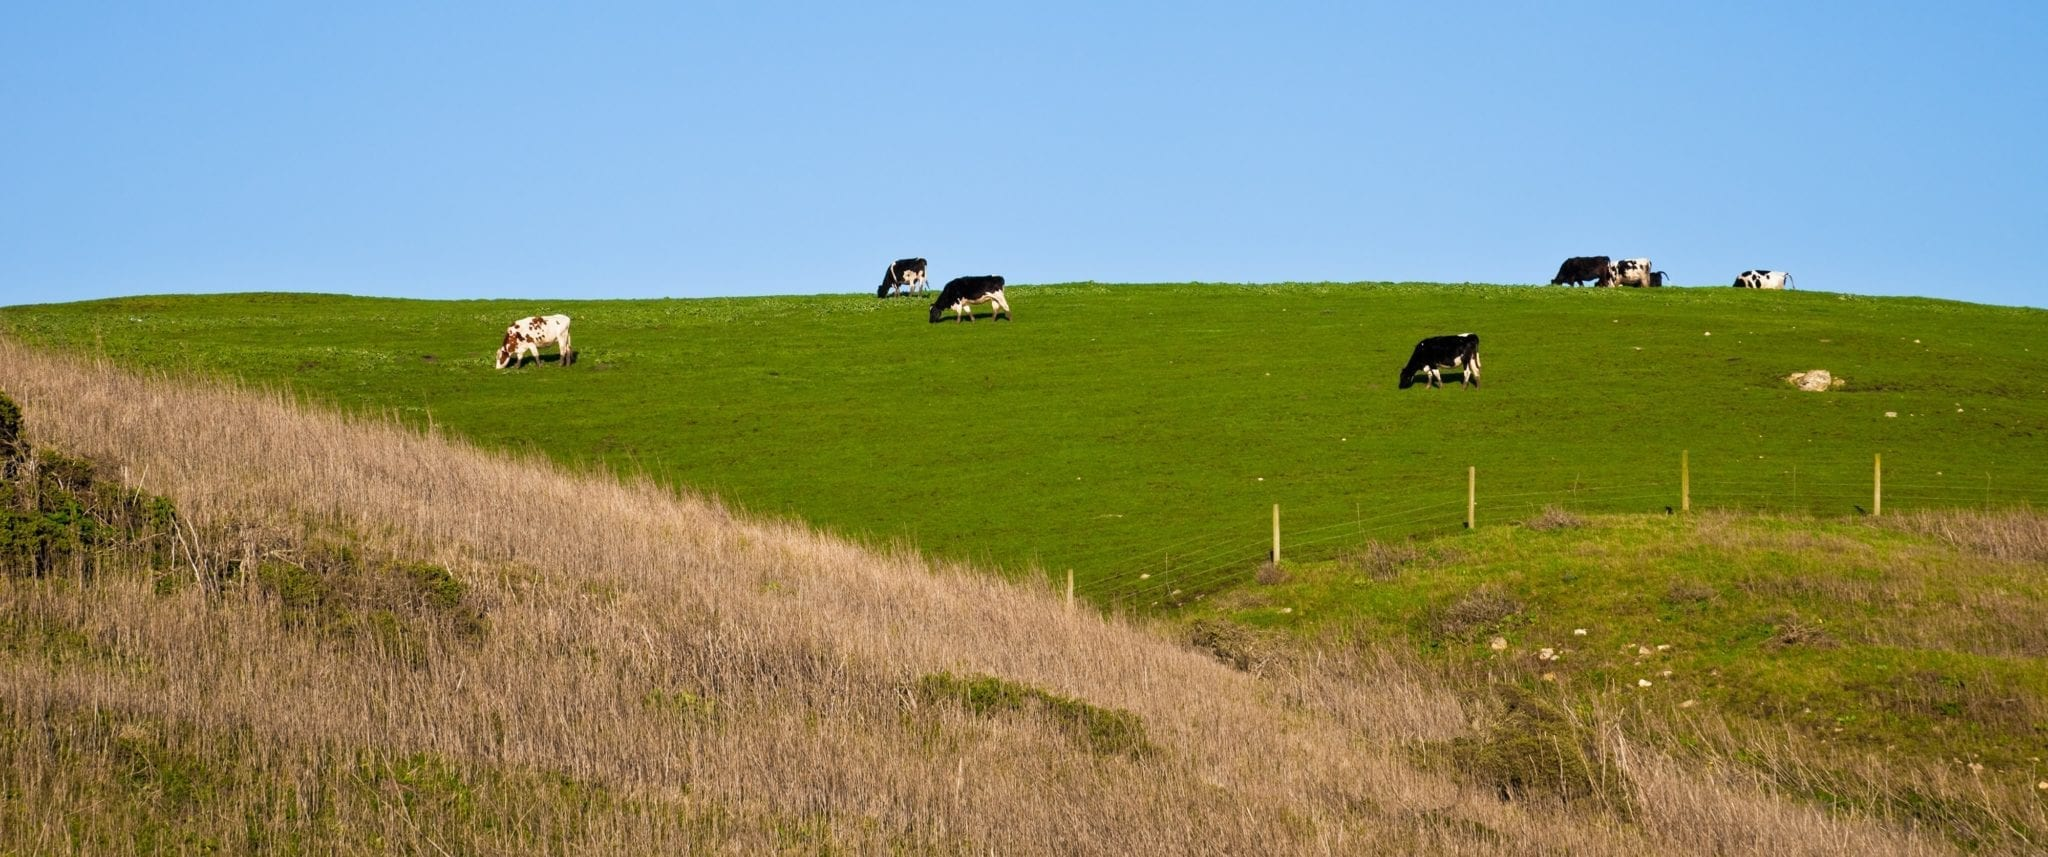 cows grazing in meadow on hill